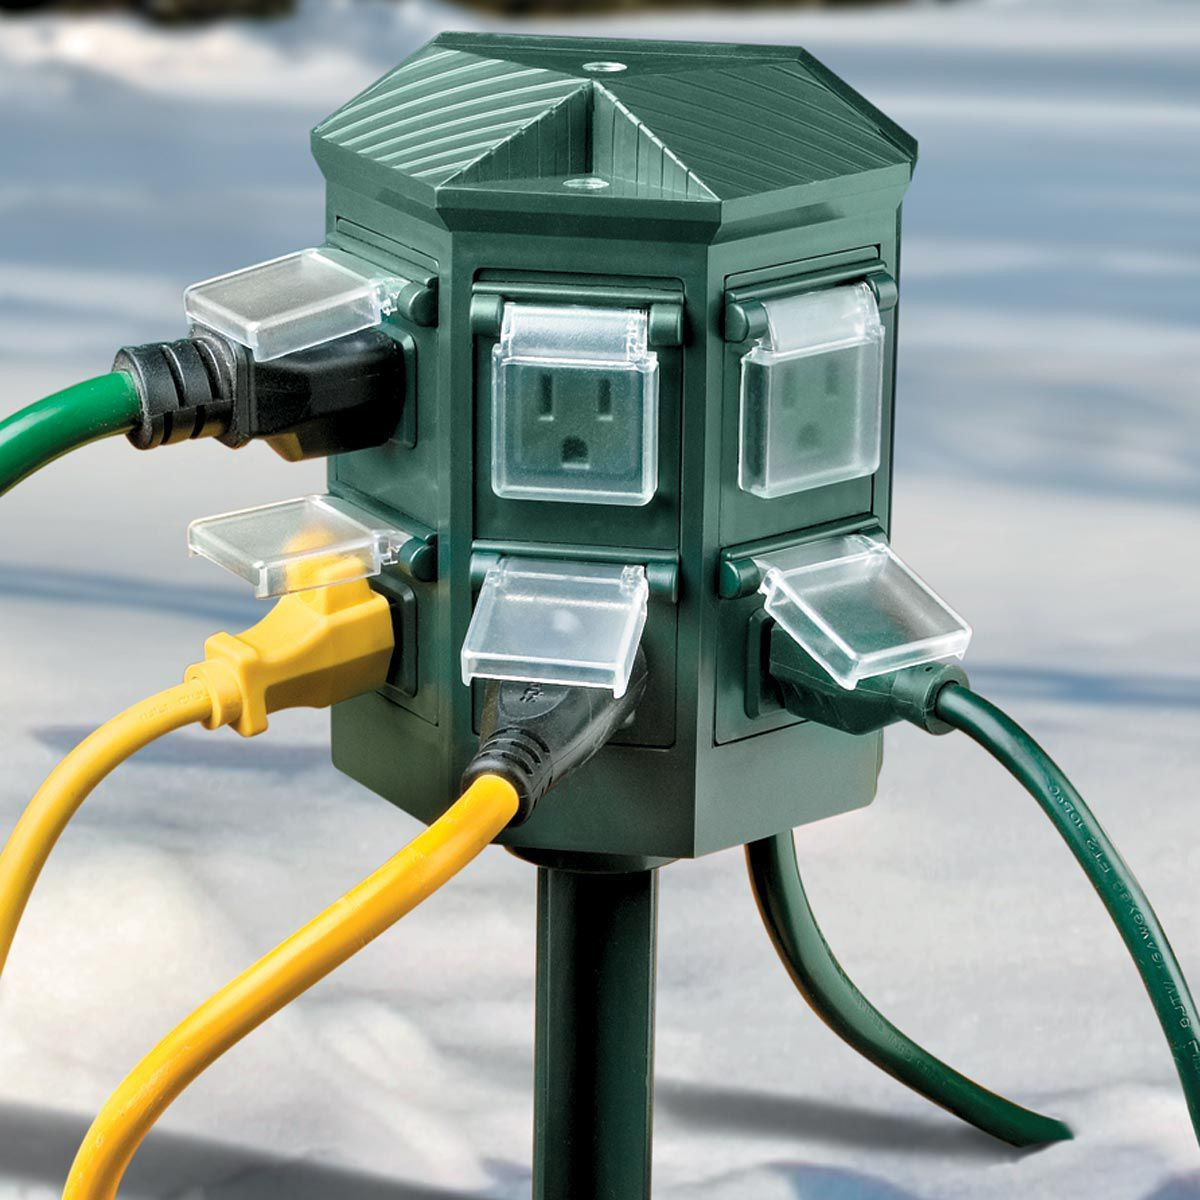 Best ideas about Outdoor Power Strips . Save or Pin Weatherproof Outdoor Timer Power Strip Now.